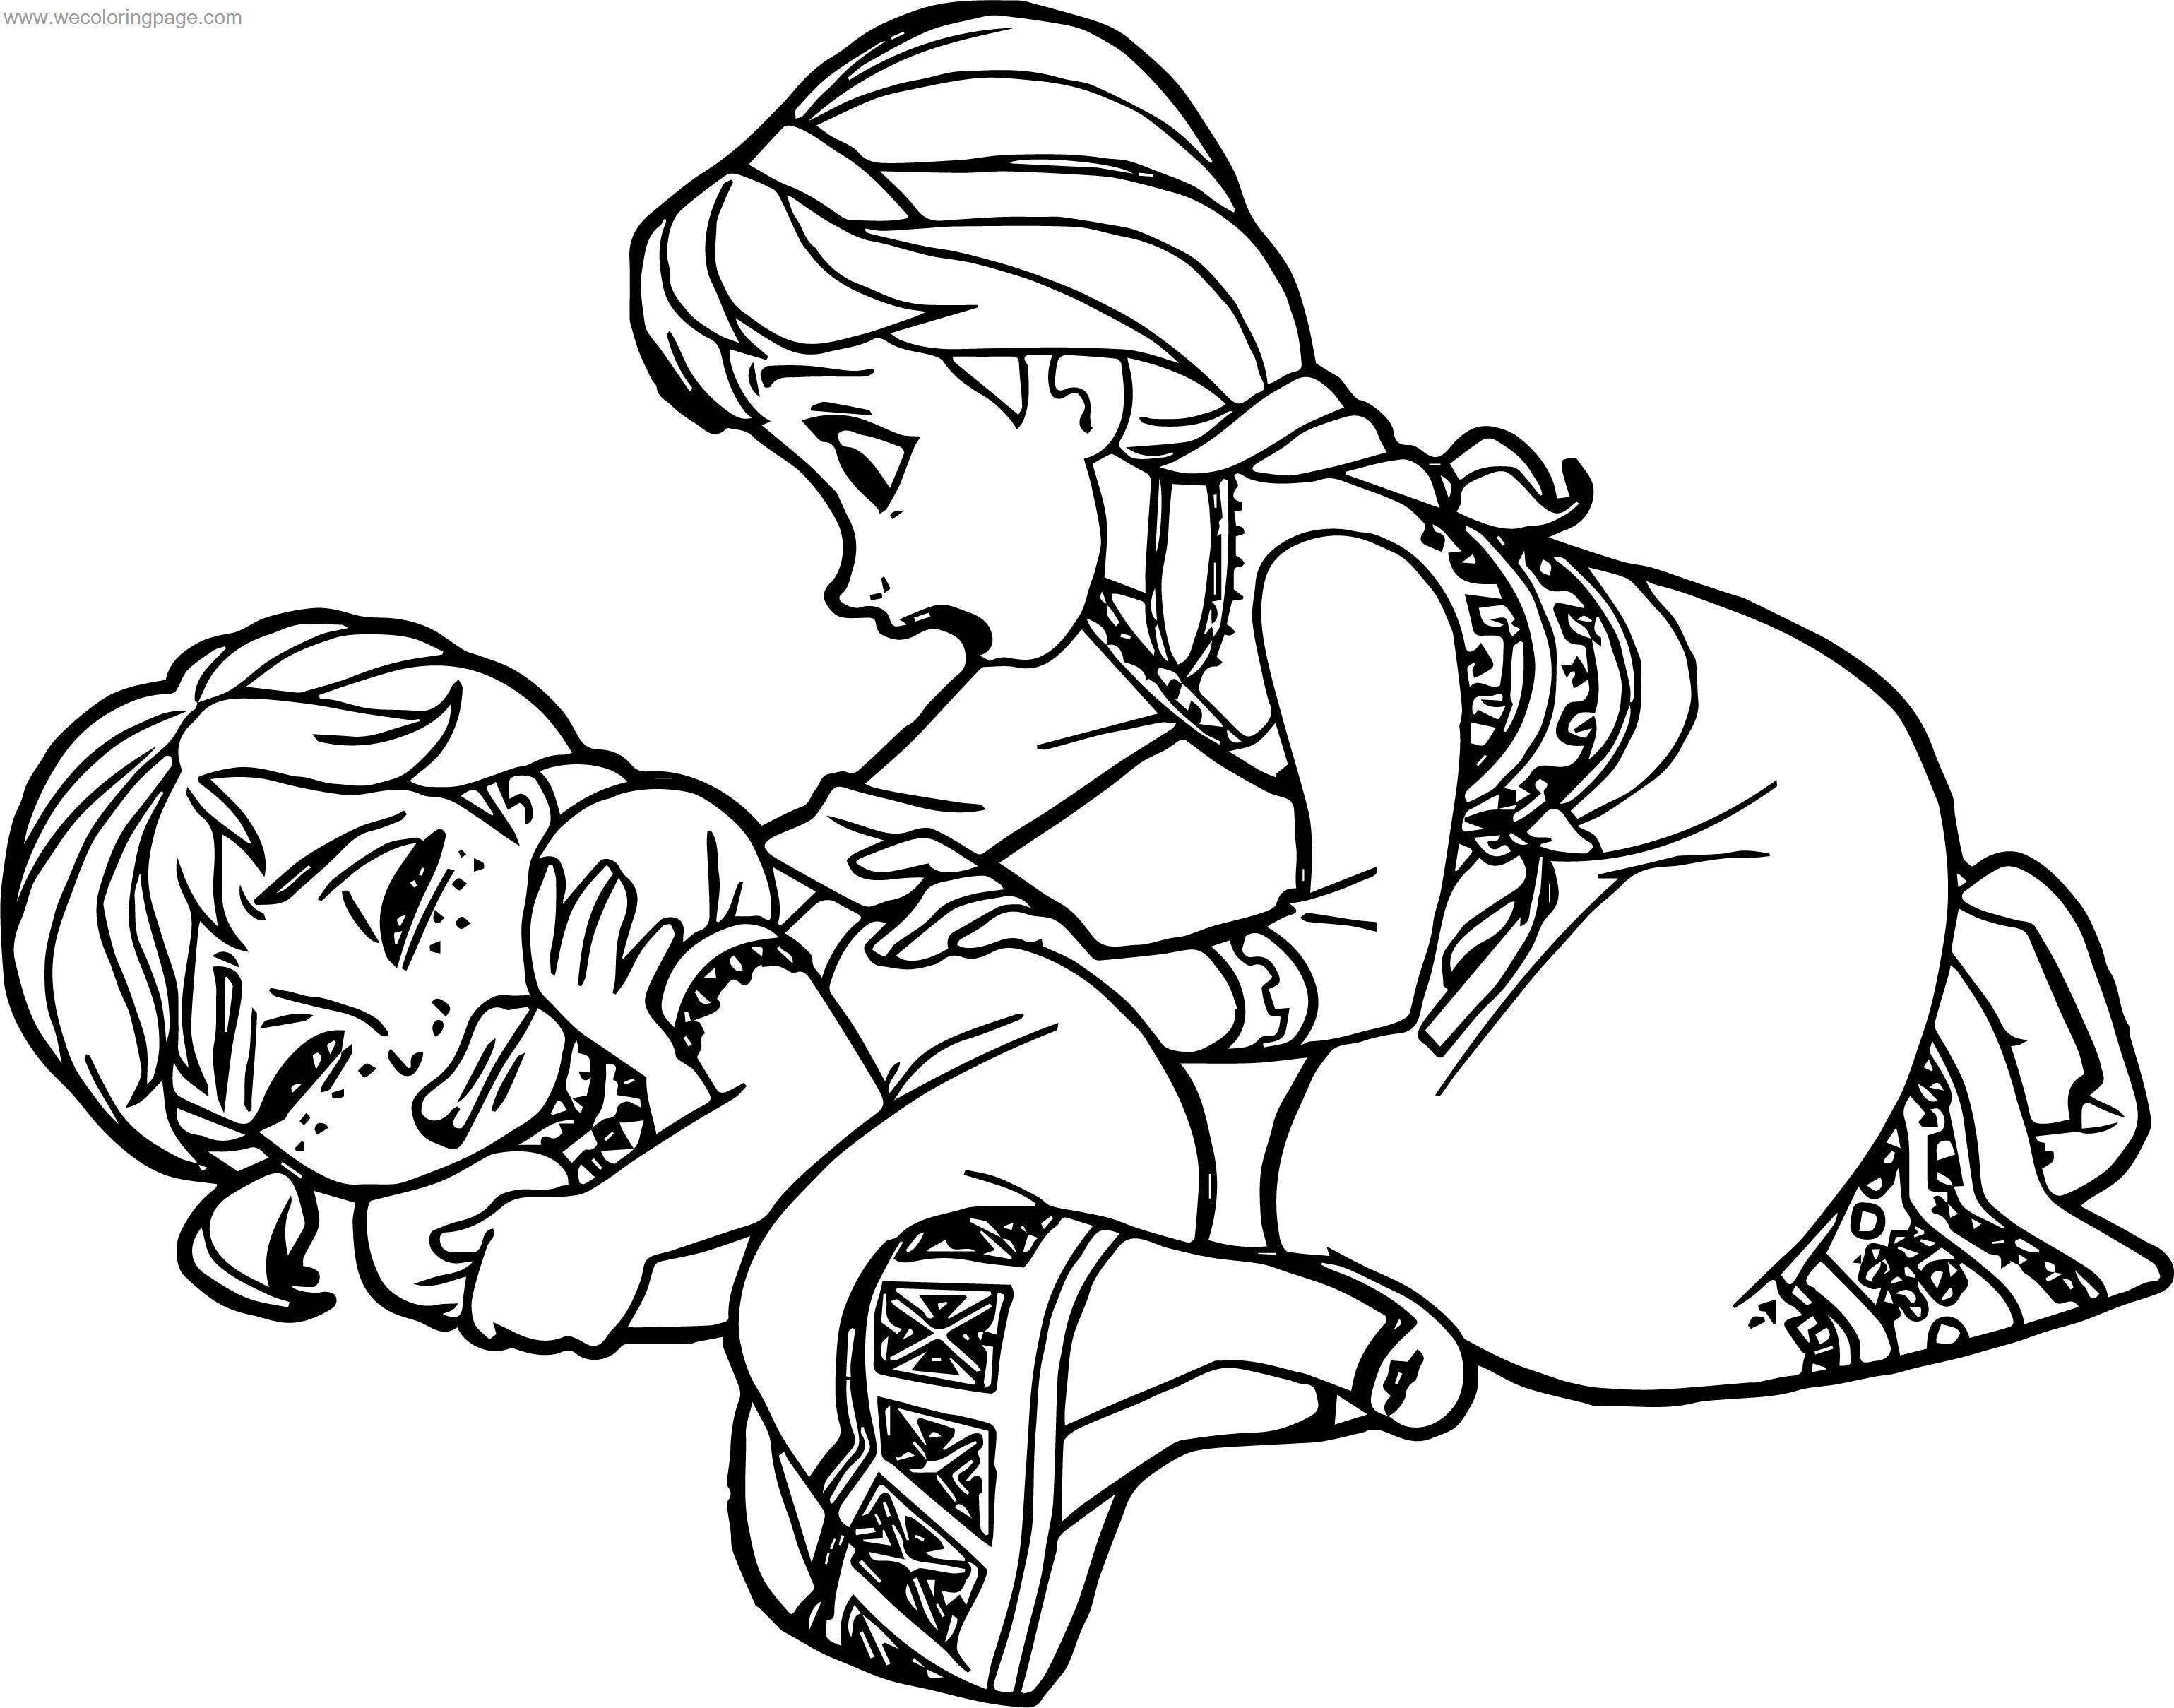 Frozen Young Anna Elsa Coloring Page